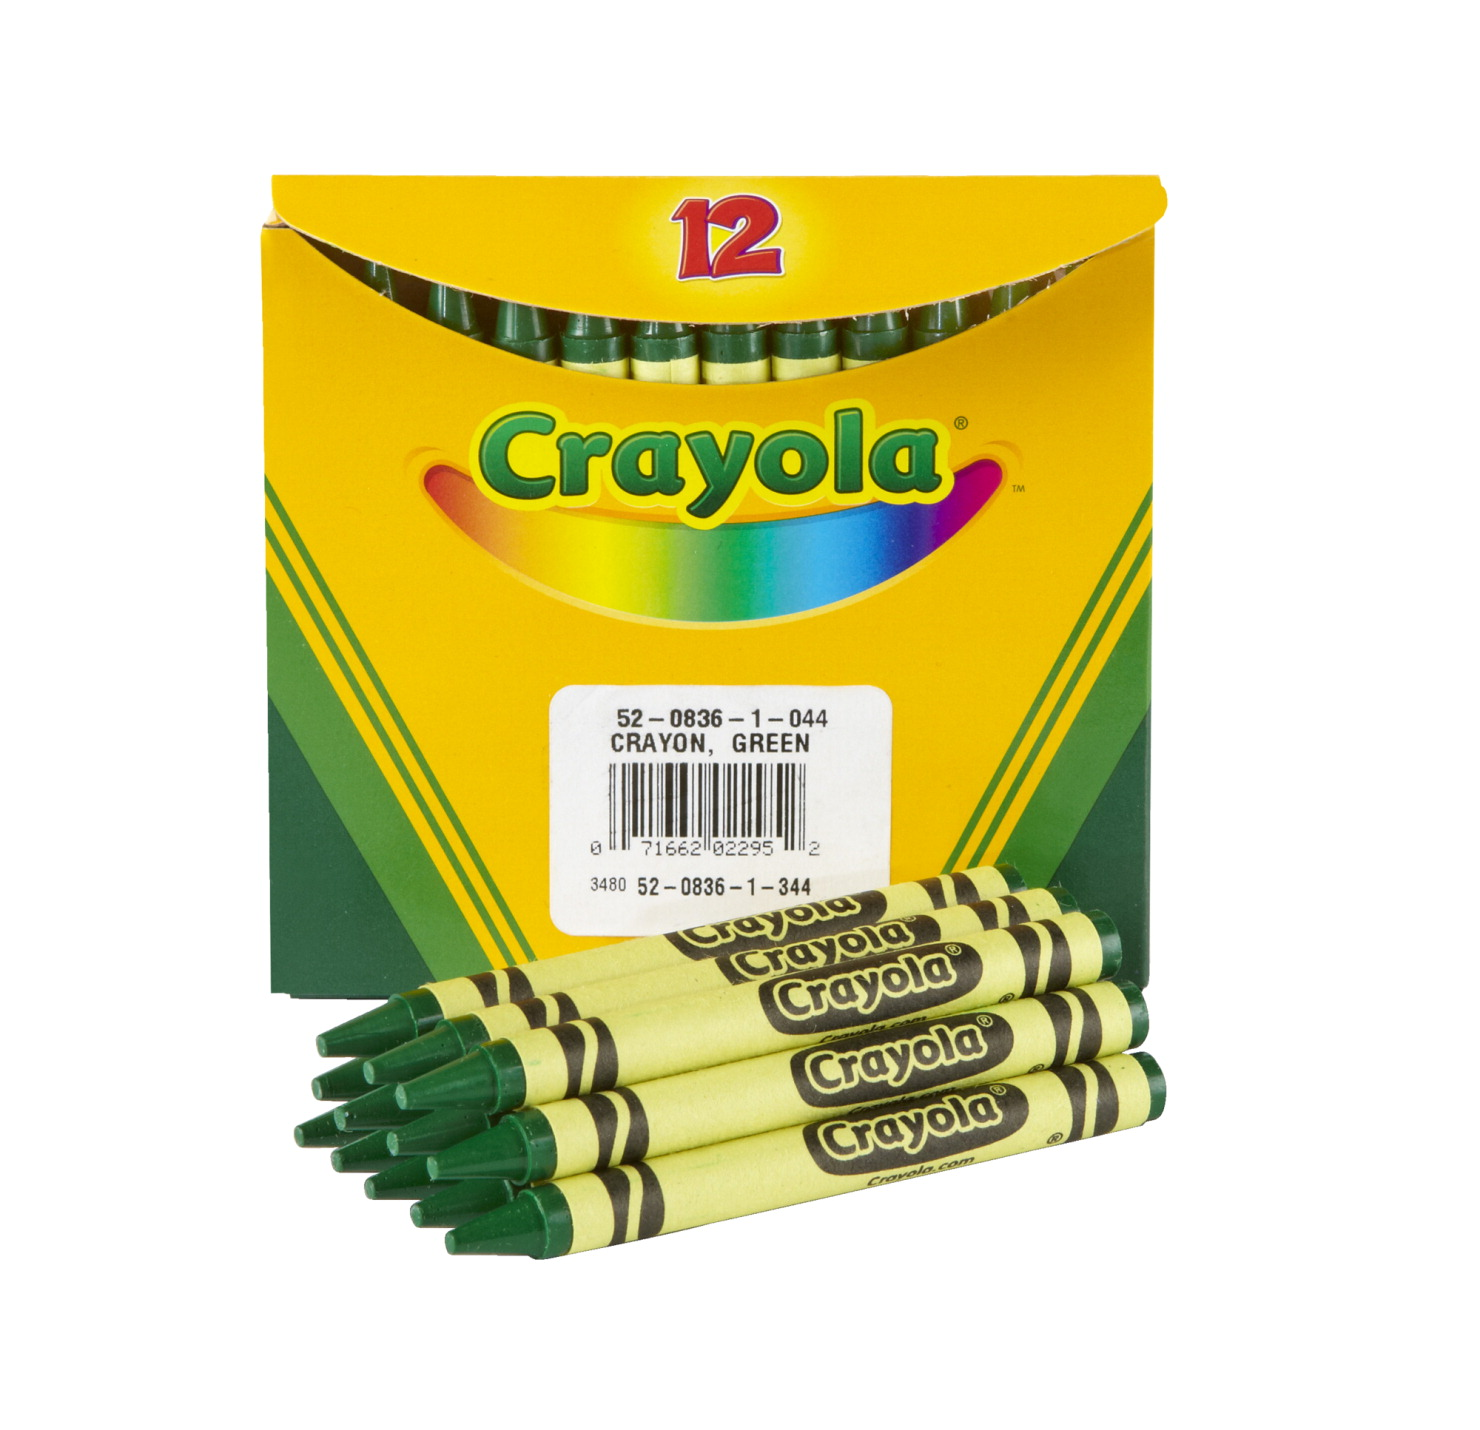 Crayola Crayon Refill, Green - SOAR Life Products